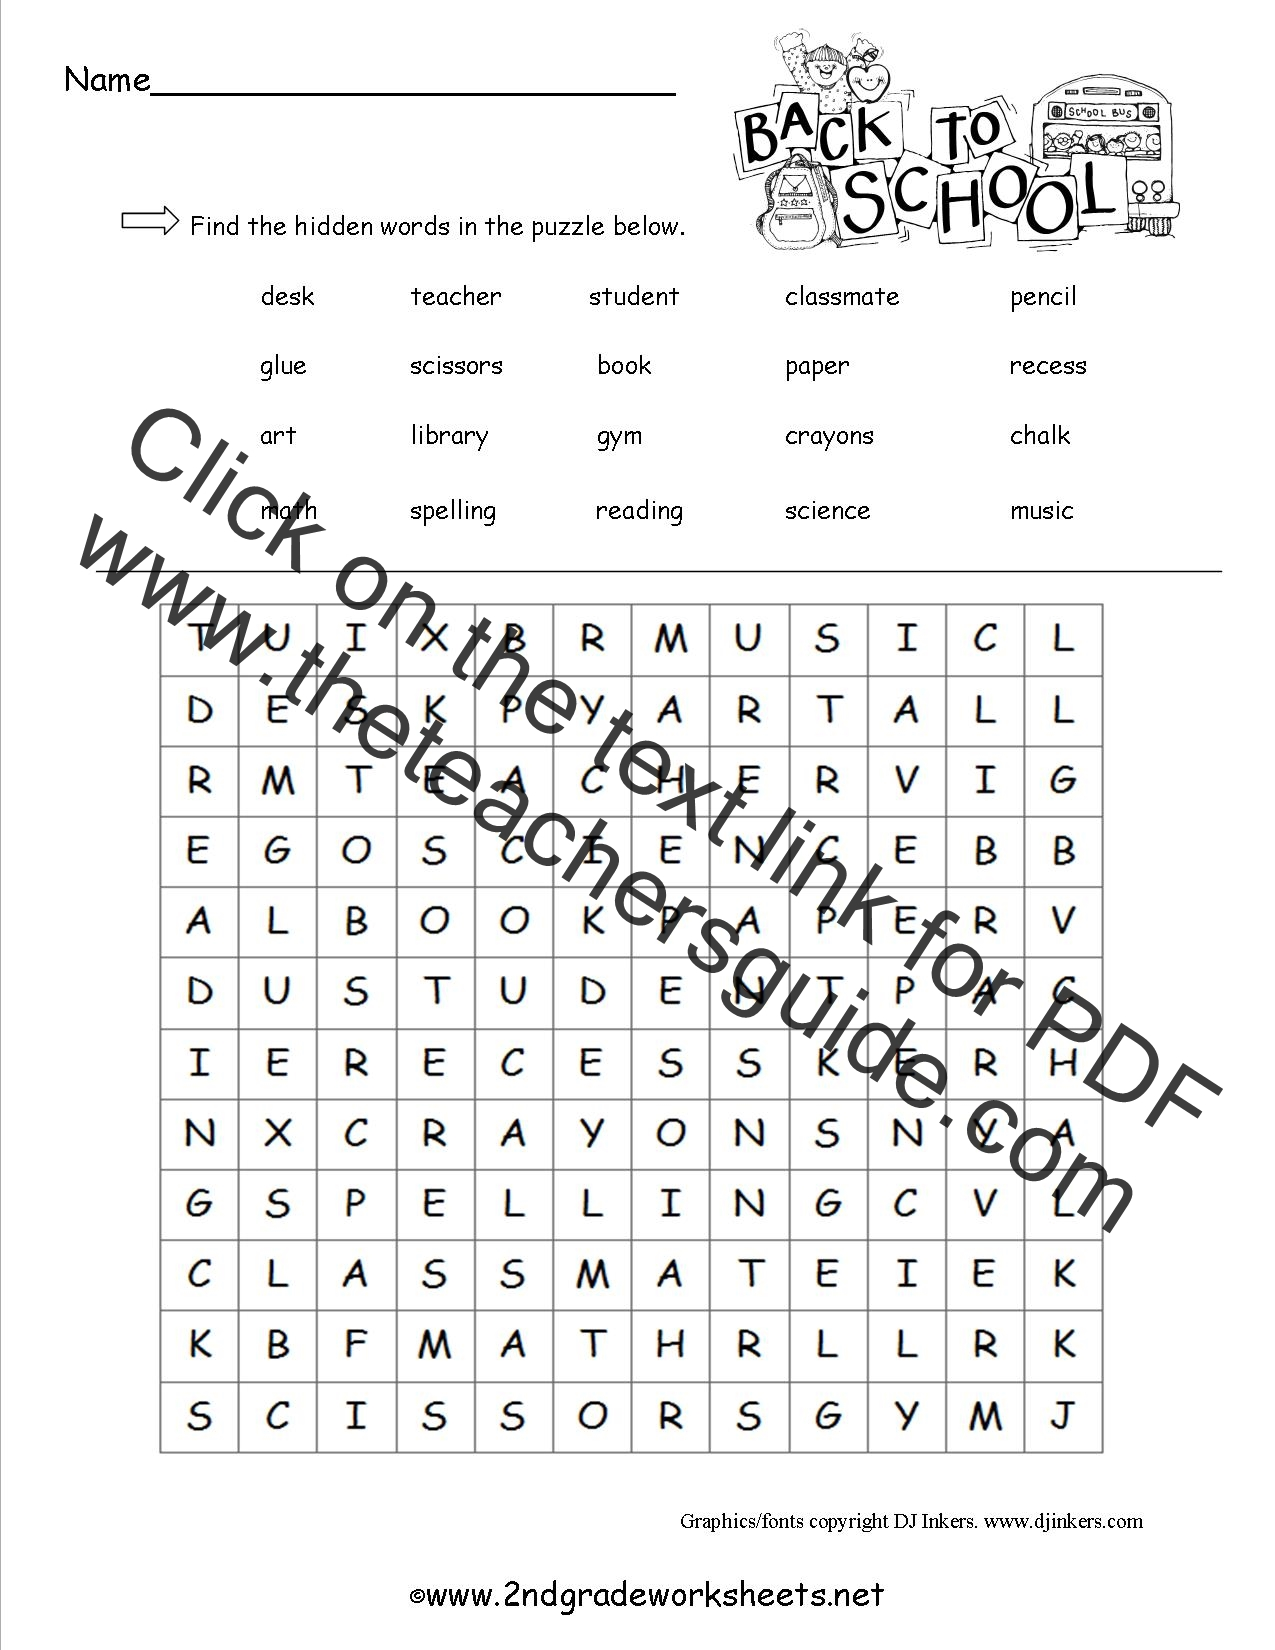 photo regarding 2nd Grade Word Search Printable named Absolutely free Back again in direction of Faculty Worksheets and Printouts